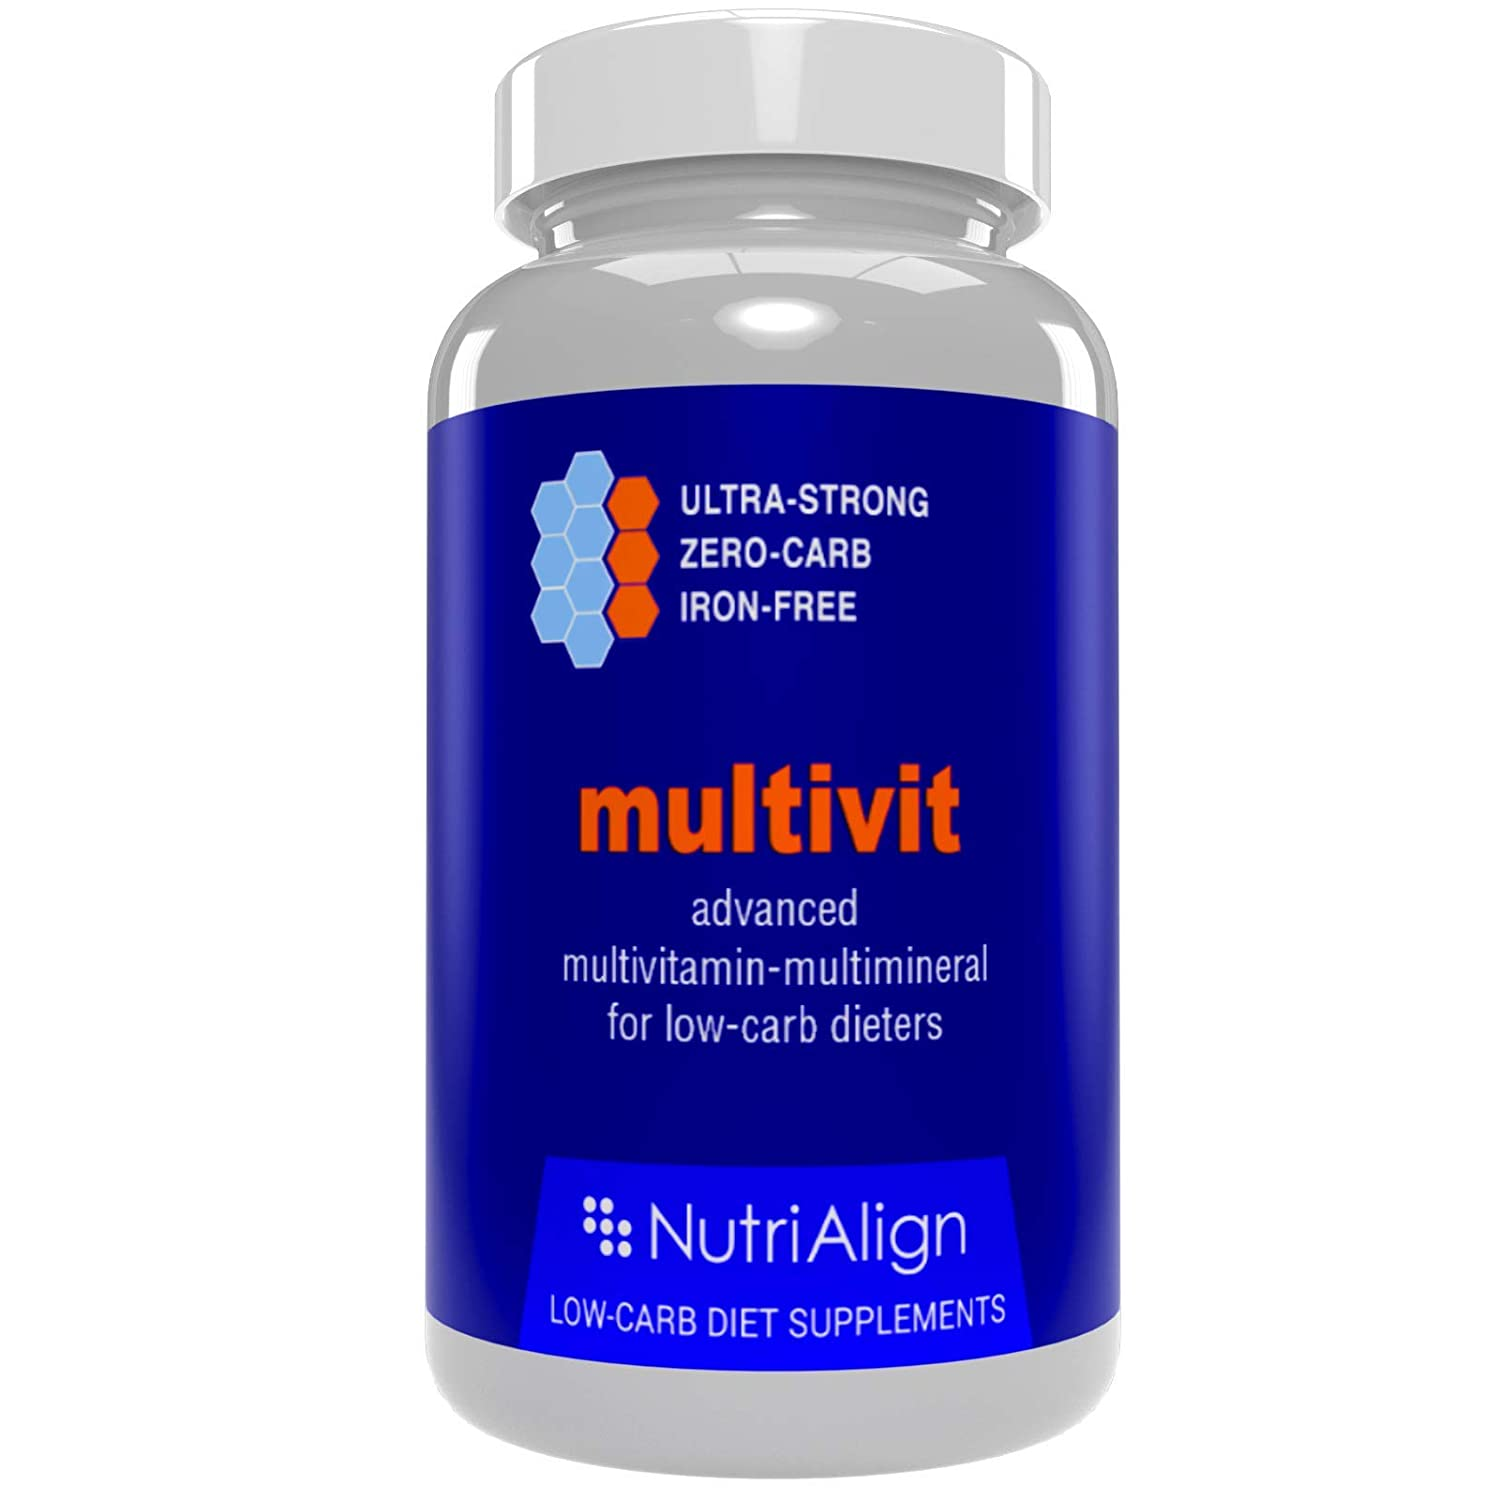 Low-Carb Diet Multivitamins. Optimas para la Atkins, Cetogénica y dietas similares bajas en carbohidratos.